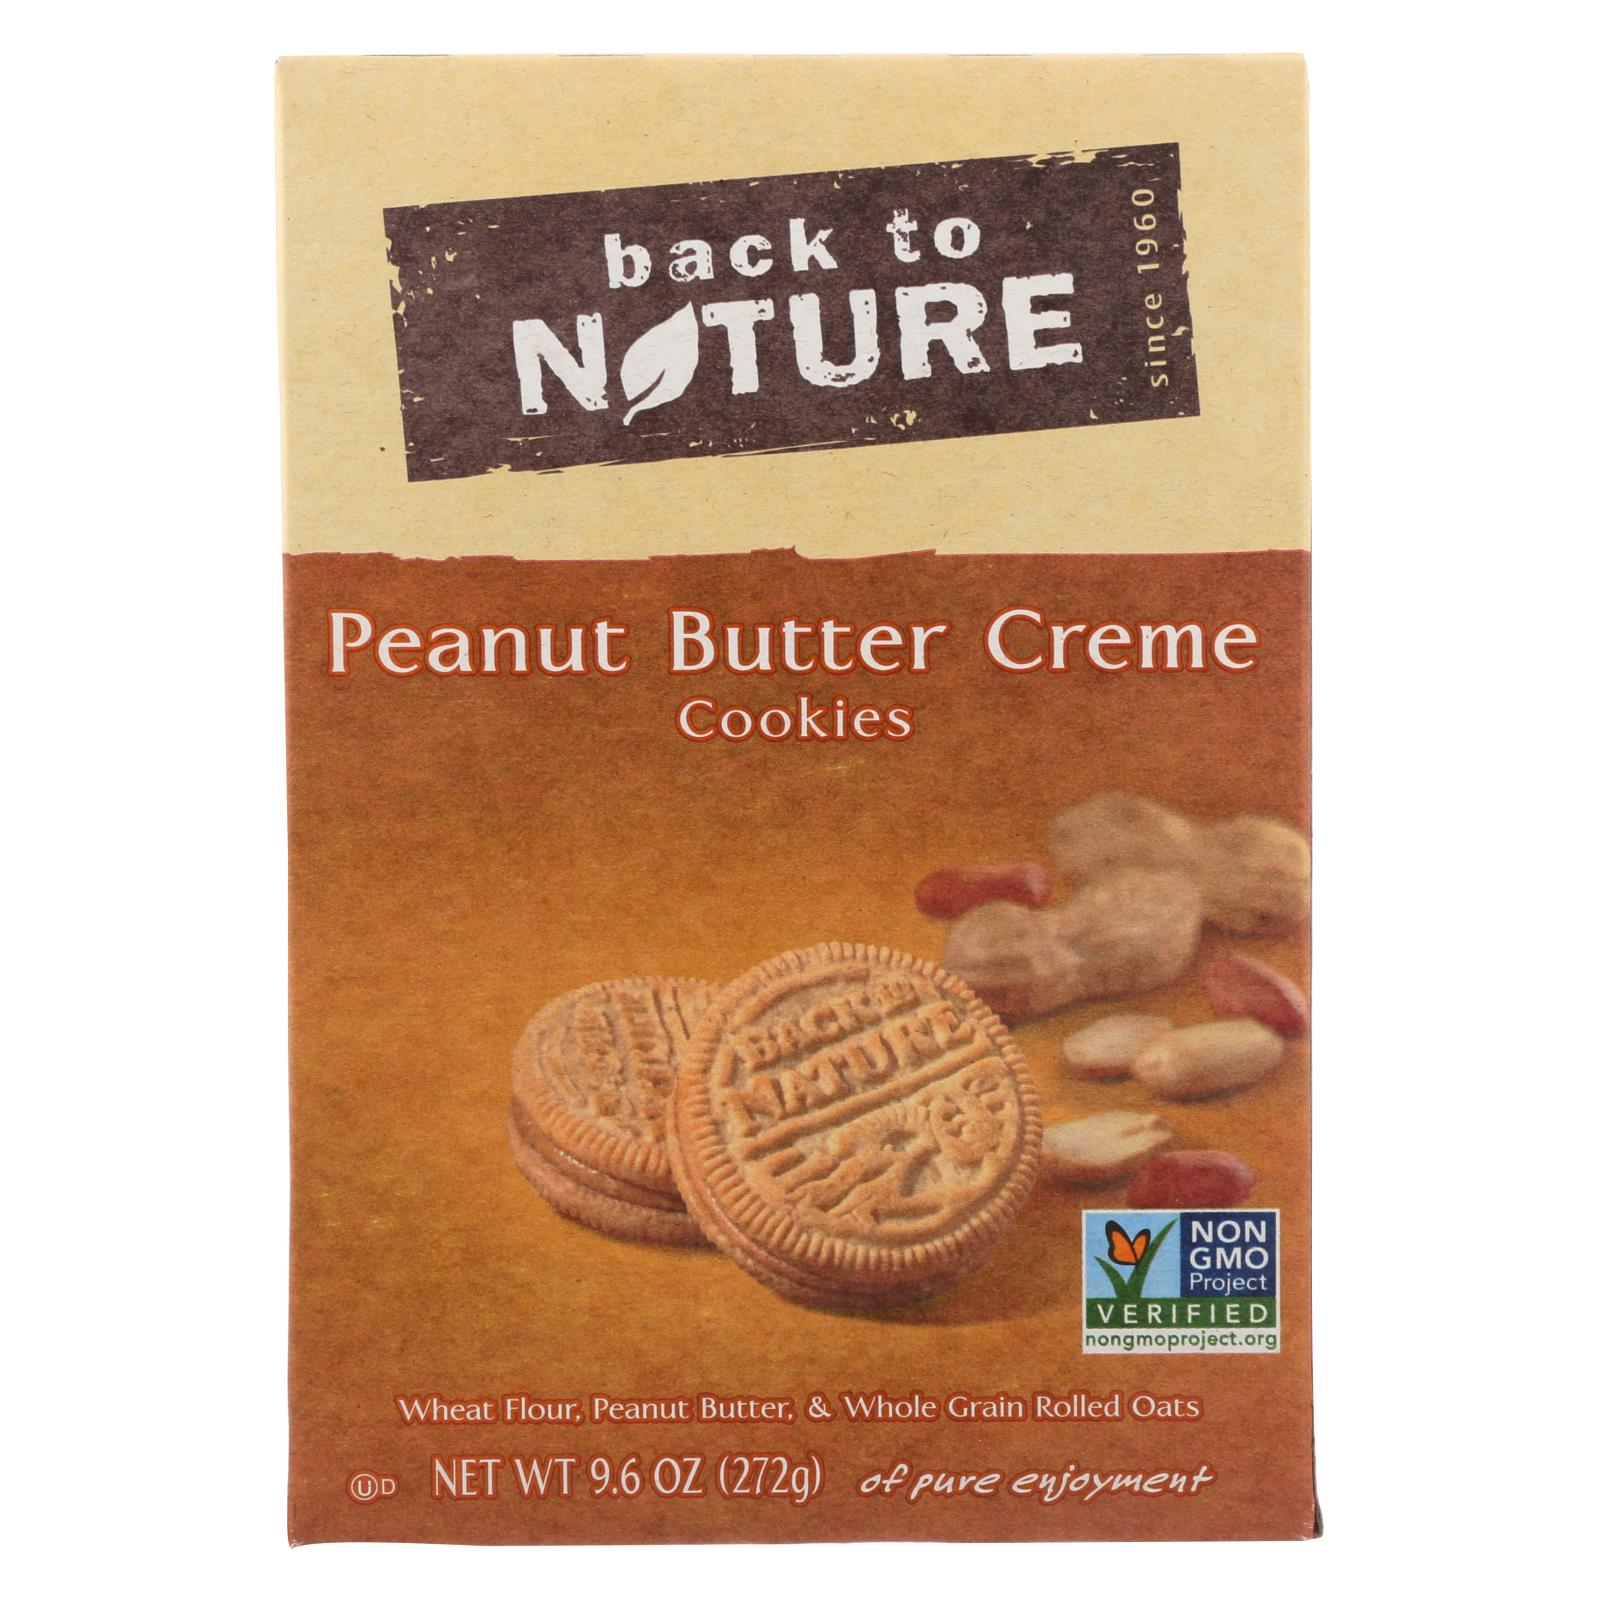 Back To Nature Creme Cookies - Peanut Butter - Case Of 6 - 9.6 Oz. HG1518356